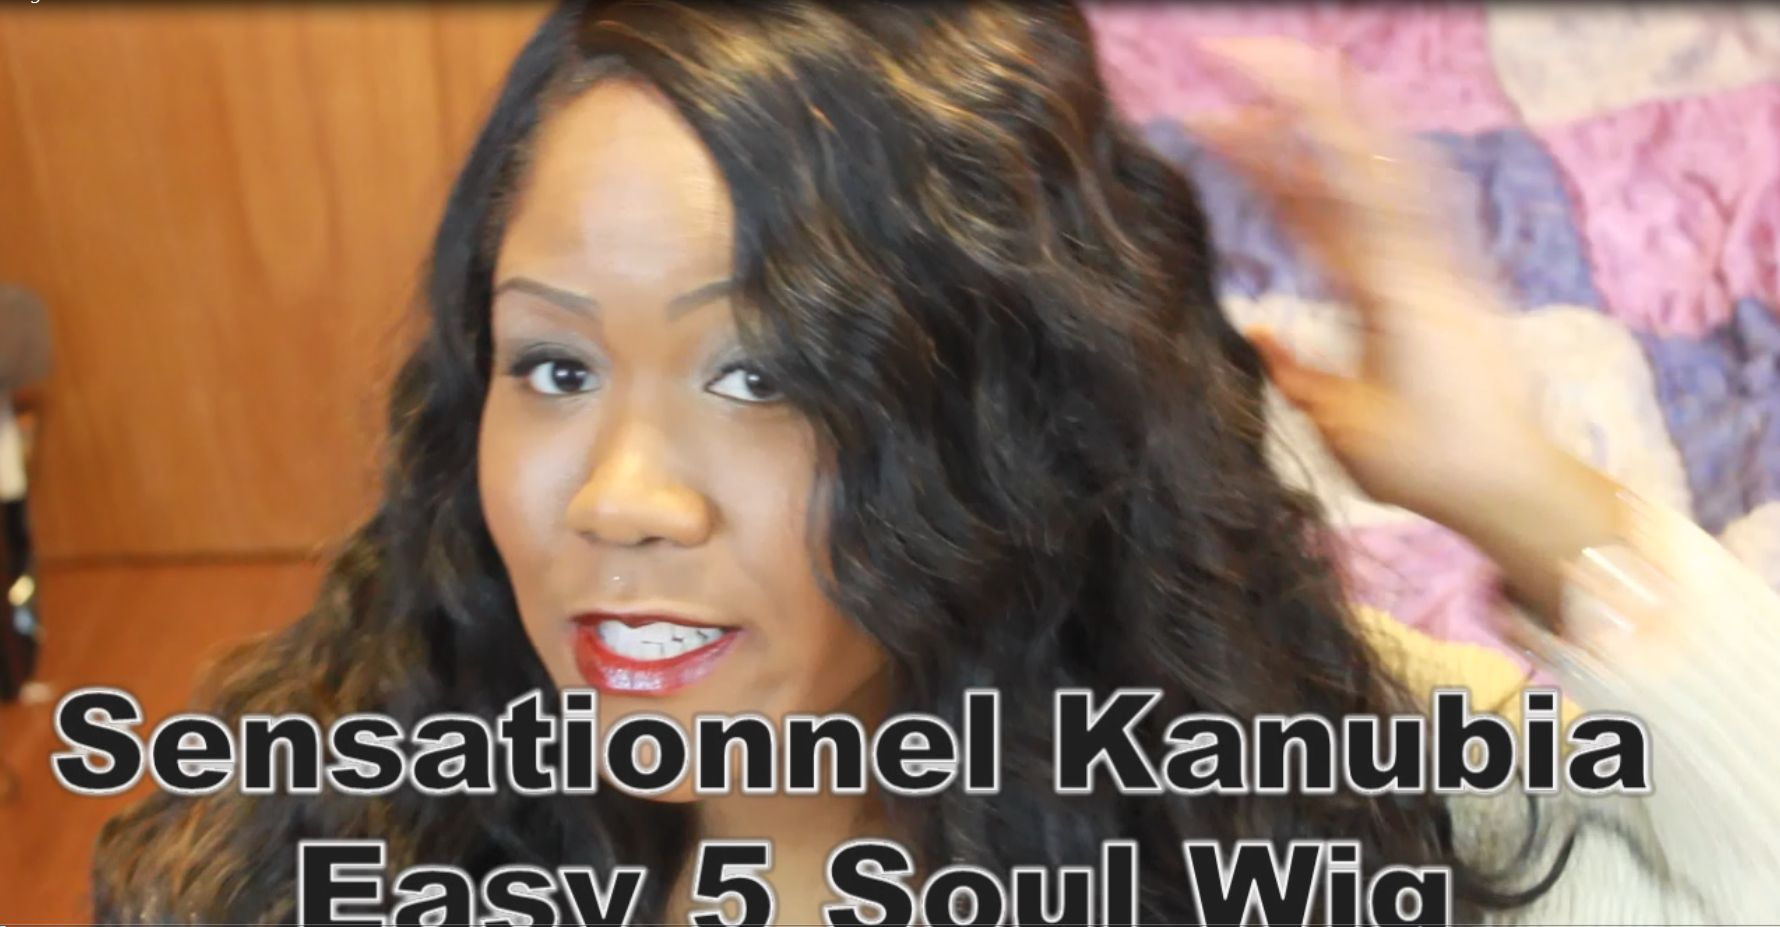 SENSATIONNEL Empress Lace Front Edge Kanubia EASY 5 SOUL Wig Review